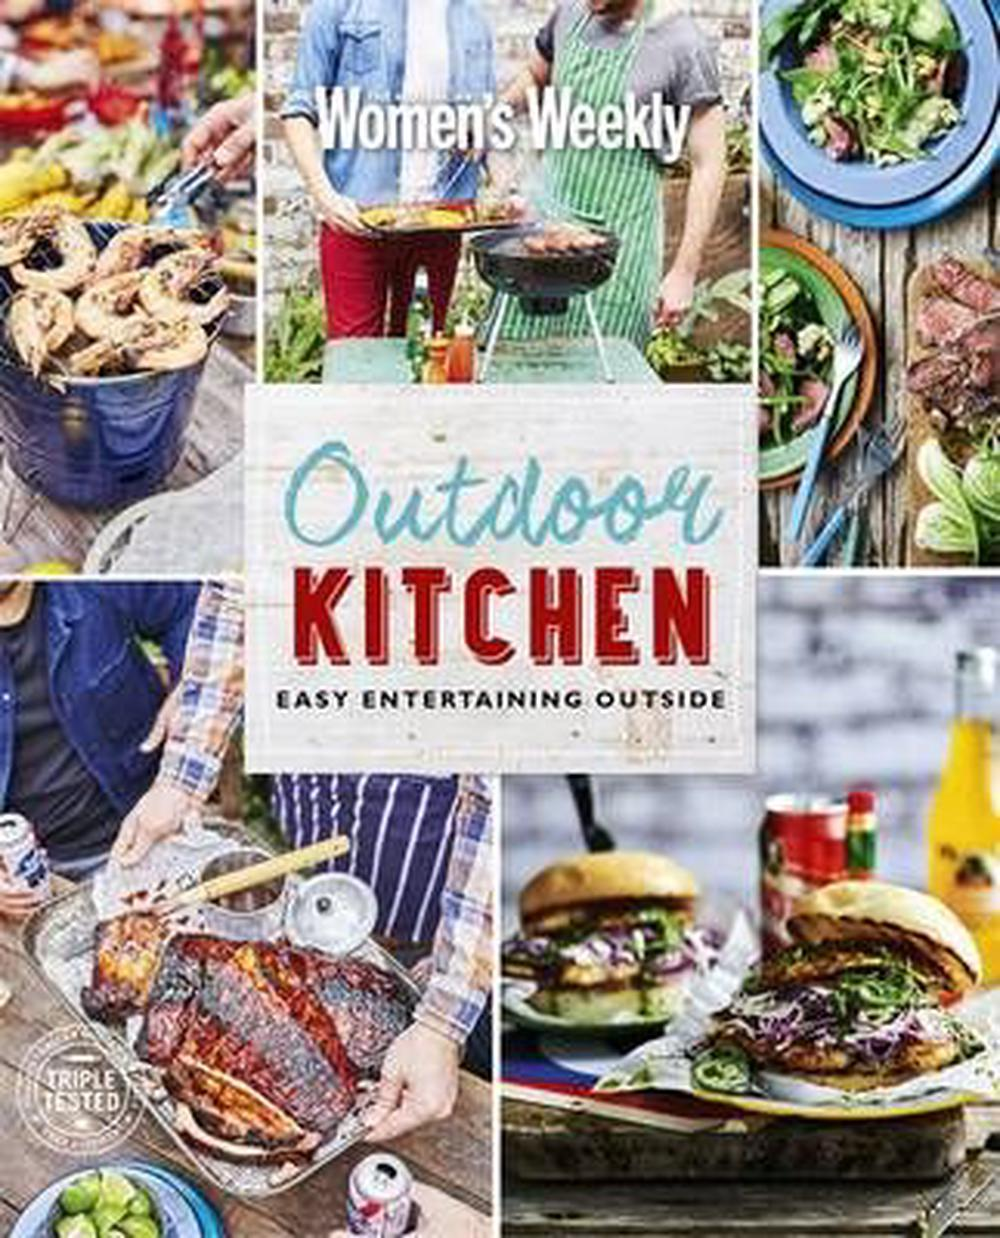 Outdoor Kitchen by The Aust Weekly, ISBN: 9781742457215